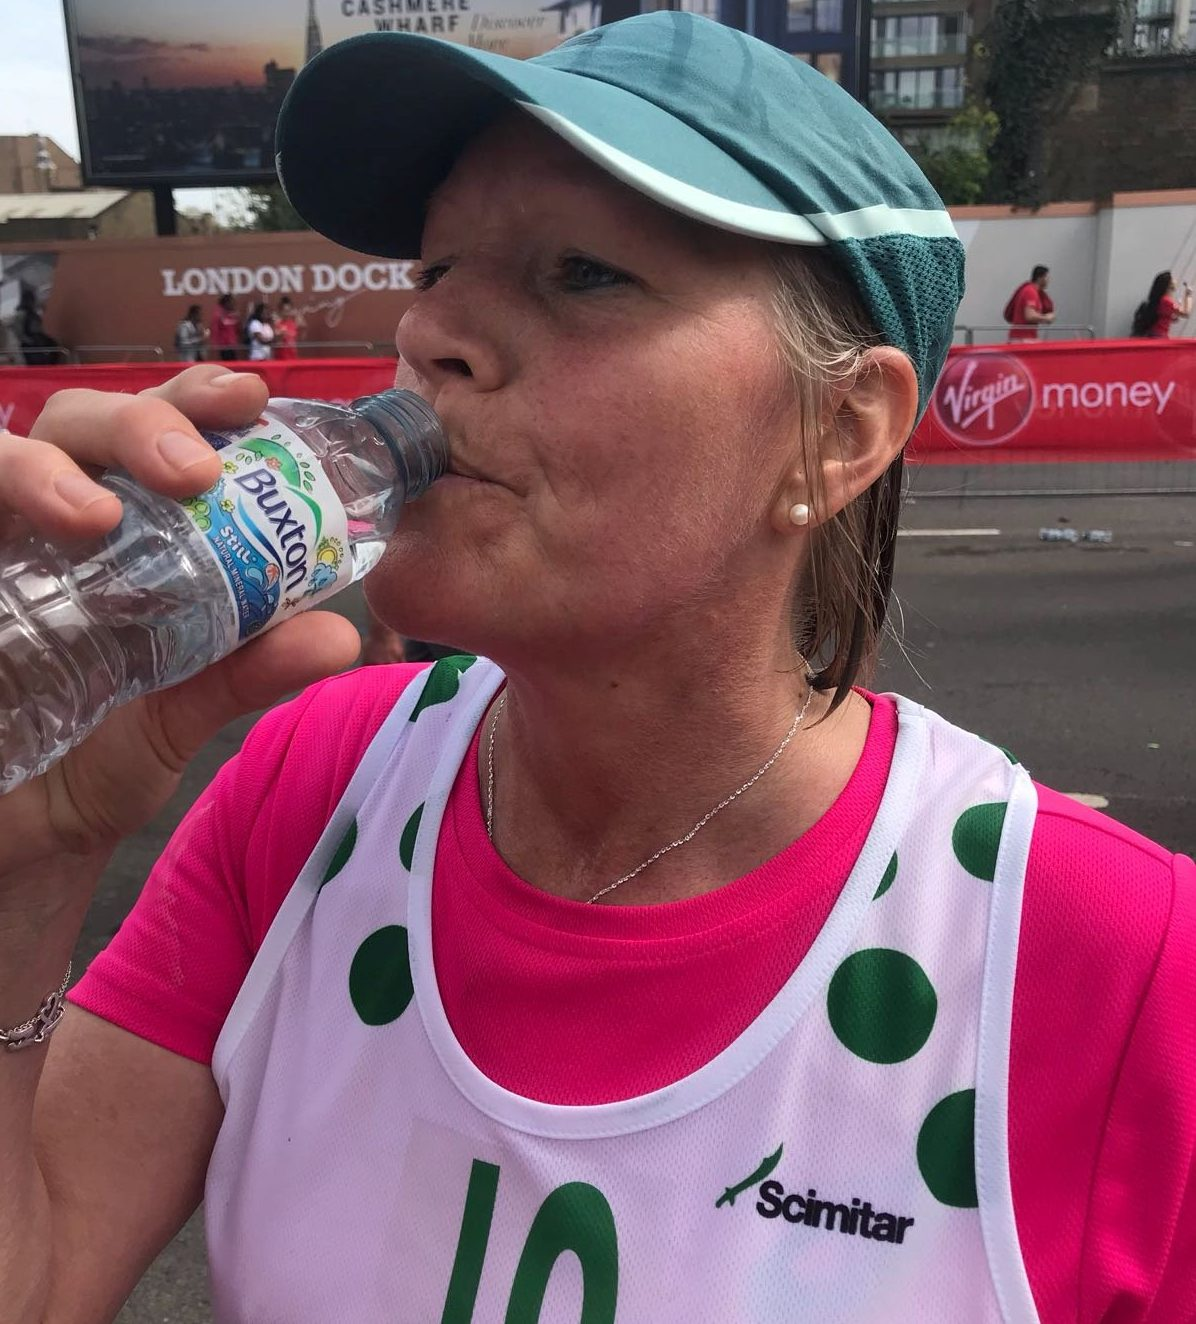 Johanna Pakenham pictured at the London Marathon - the runner was left fighting for her life after drinking too much water at the event. See SWNS story SWMARATHON; A London Marathon runner was left fighting for her life and in a coma after drinking too much WATER during the race. Johanna Pakenham, 53, unknowingly overloaded her body with more than a dozen bottles of water to cope with the heat and has no recollection of crossing the finish line. The mum-of-four later collapsed at home, suffered a seizure, and her partner was forced to perform CPR to keep her alive before the ambulance arrived. By taking in too much fluid during the race, Joanna had flushed the sodium out of her system, resulting in the life-threatening condition know has hyponatremia.